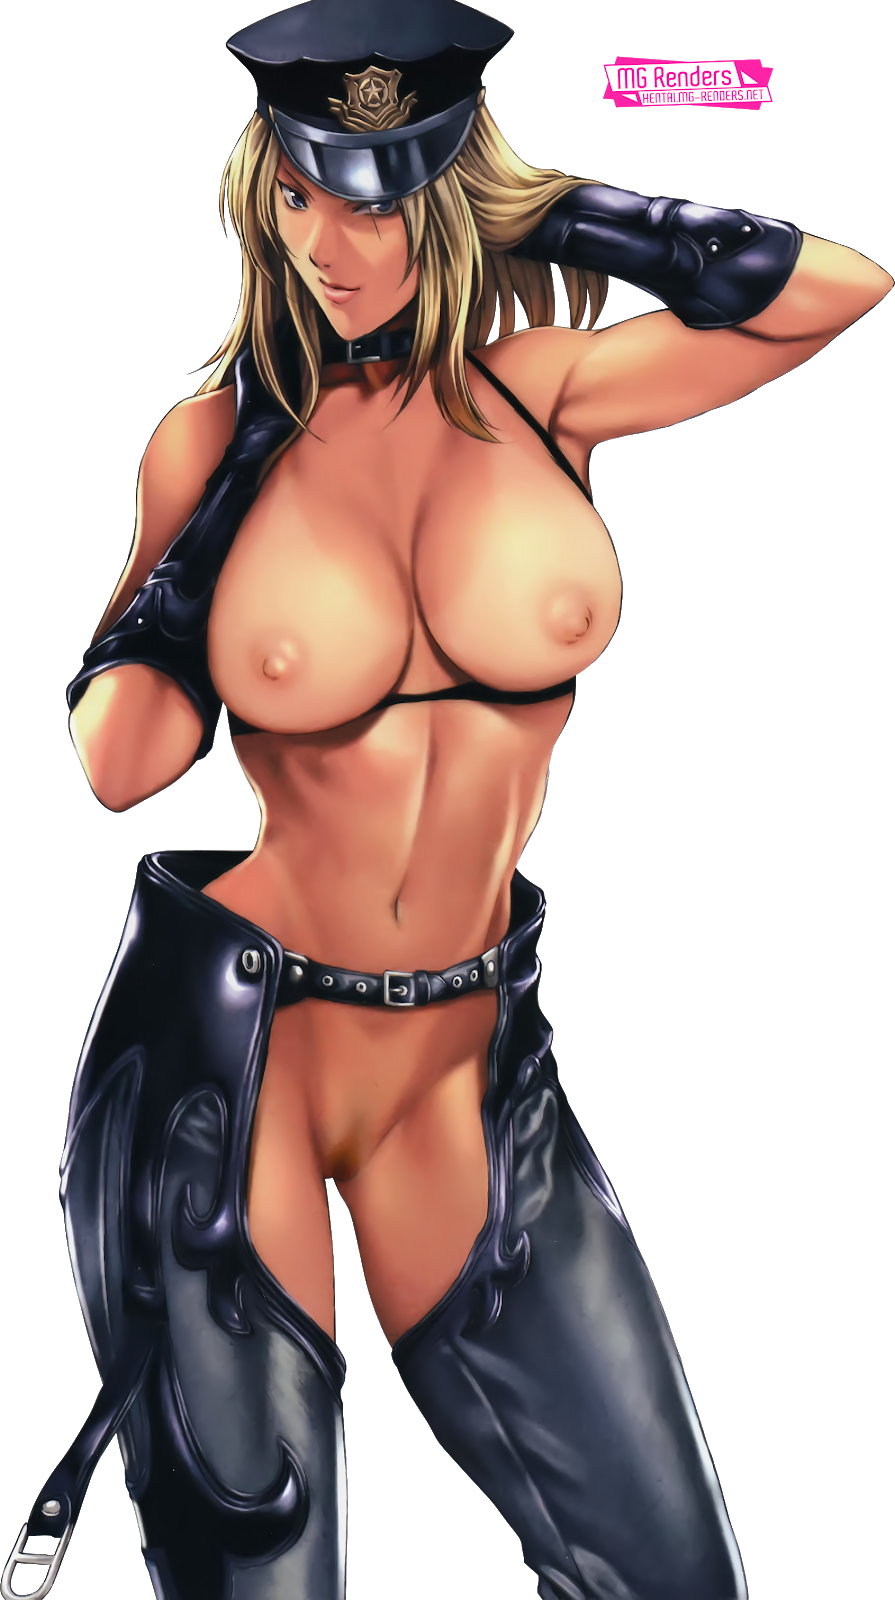 Tags: Anime, Render,  Armpit,  Arms up,  Bare shoulders,  Dixie Clemets,  Huge Breasts,  Navel,  Nipples,  No bra,  No panties,  Rumble Roses, PNG, Image, Picture